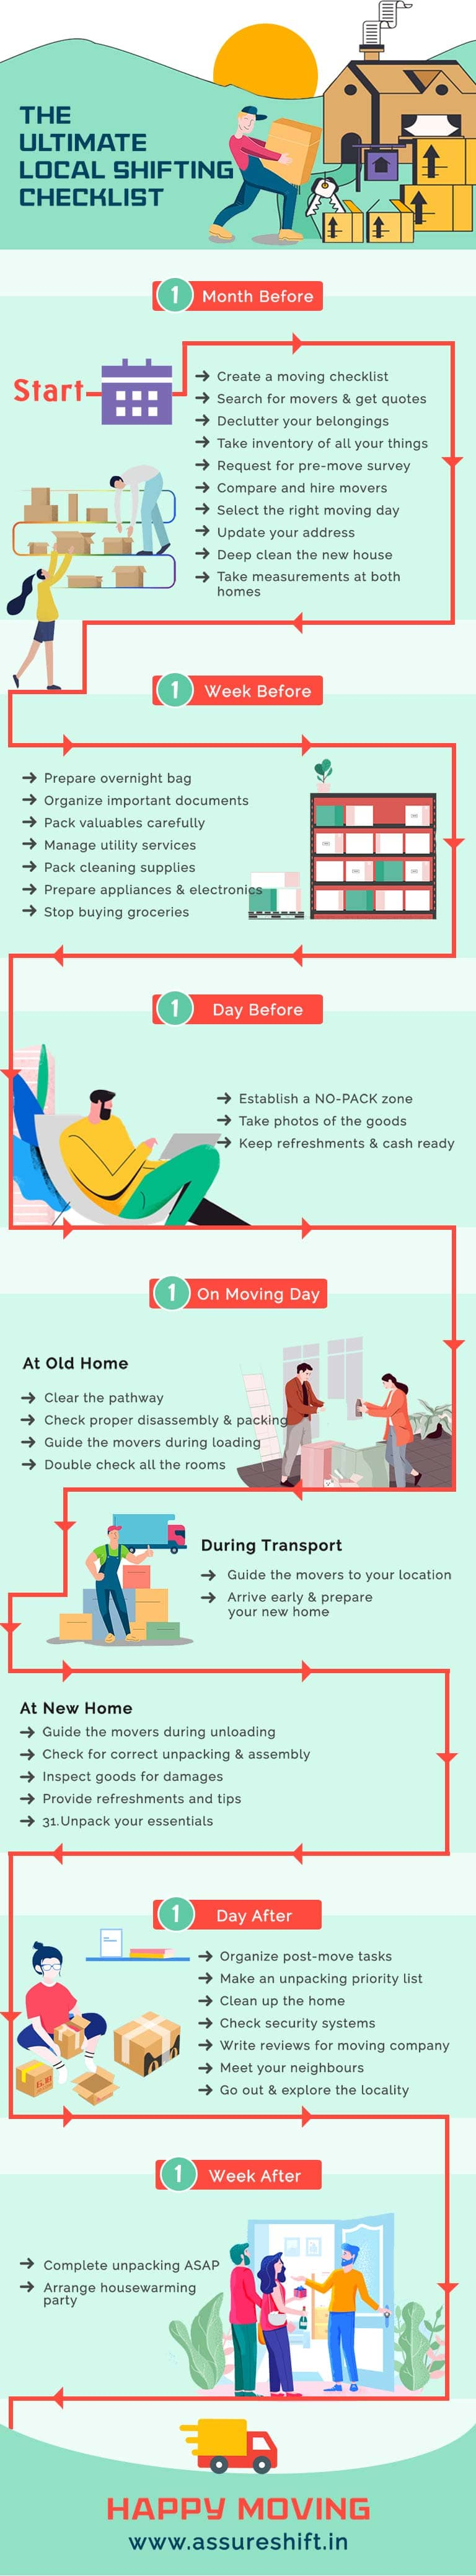 ultimate house shifting checklist infography